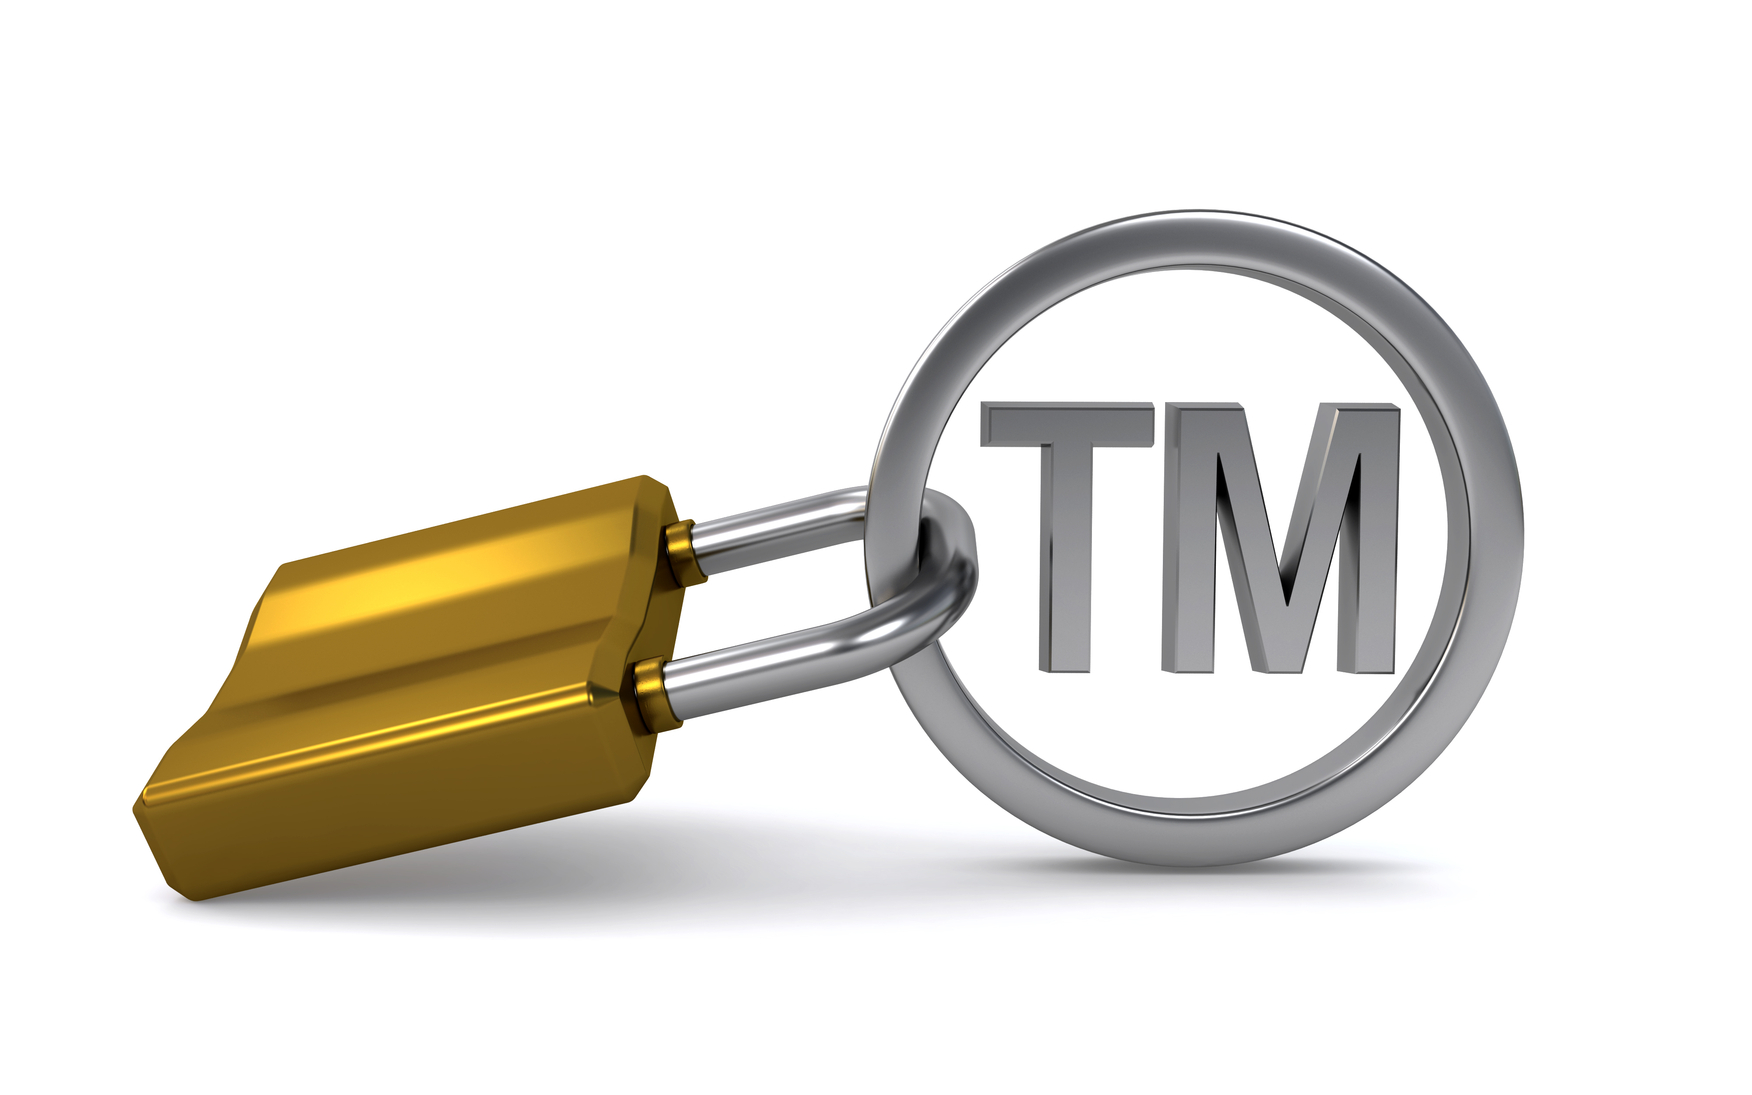 Trademark and copyright law Attorney